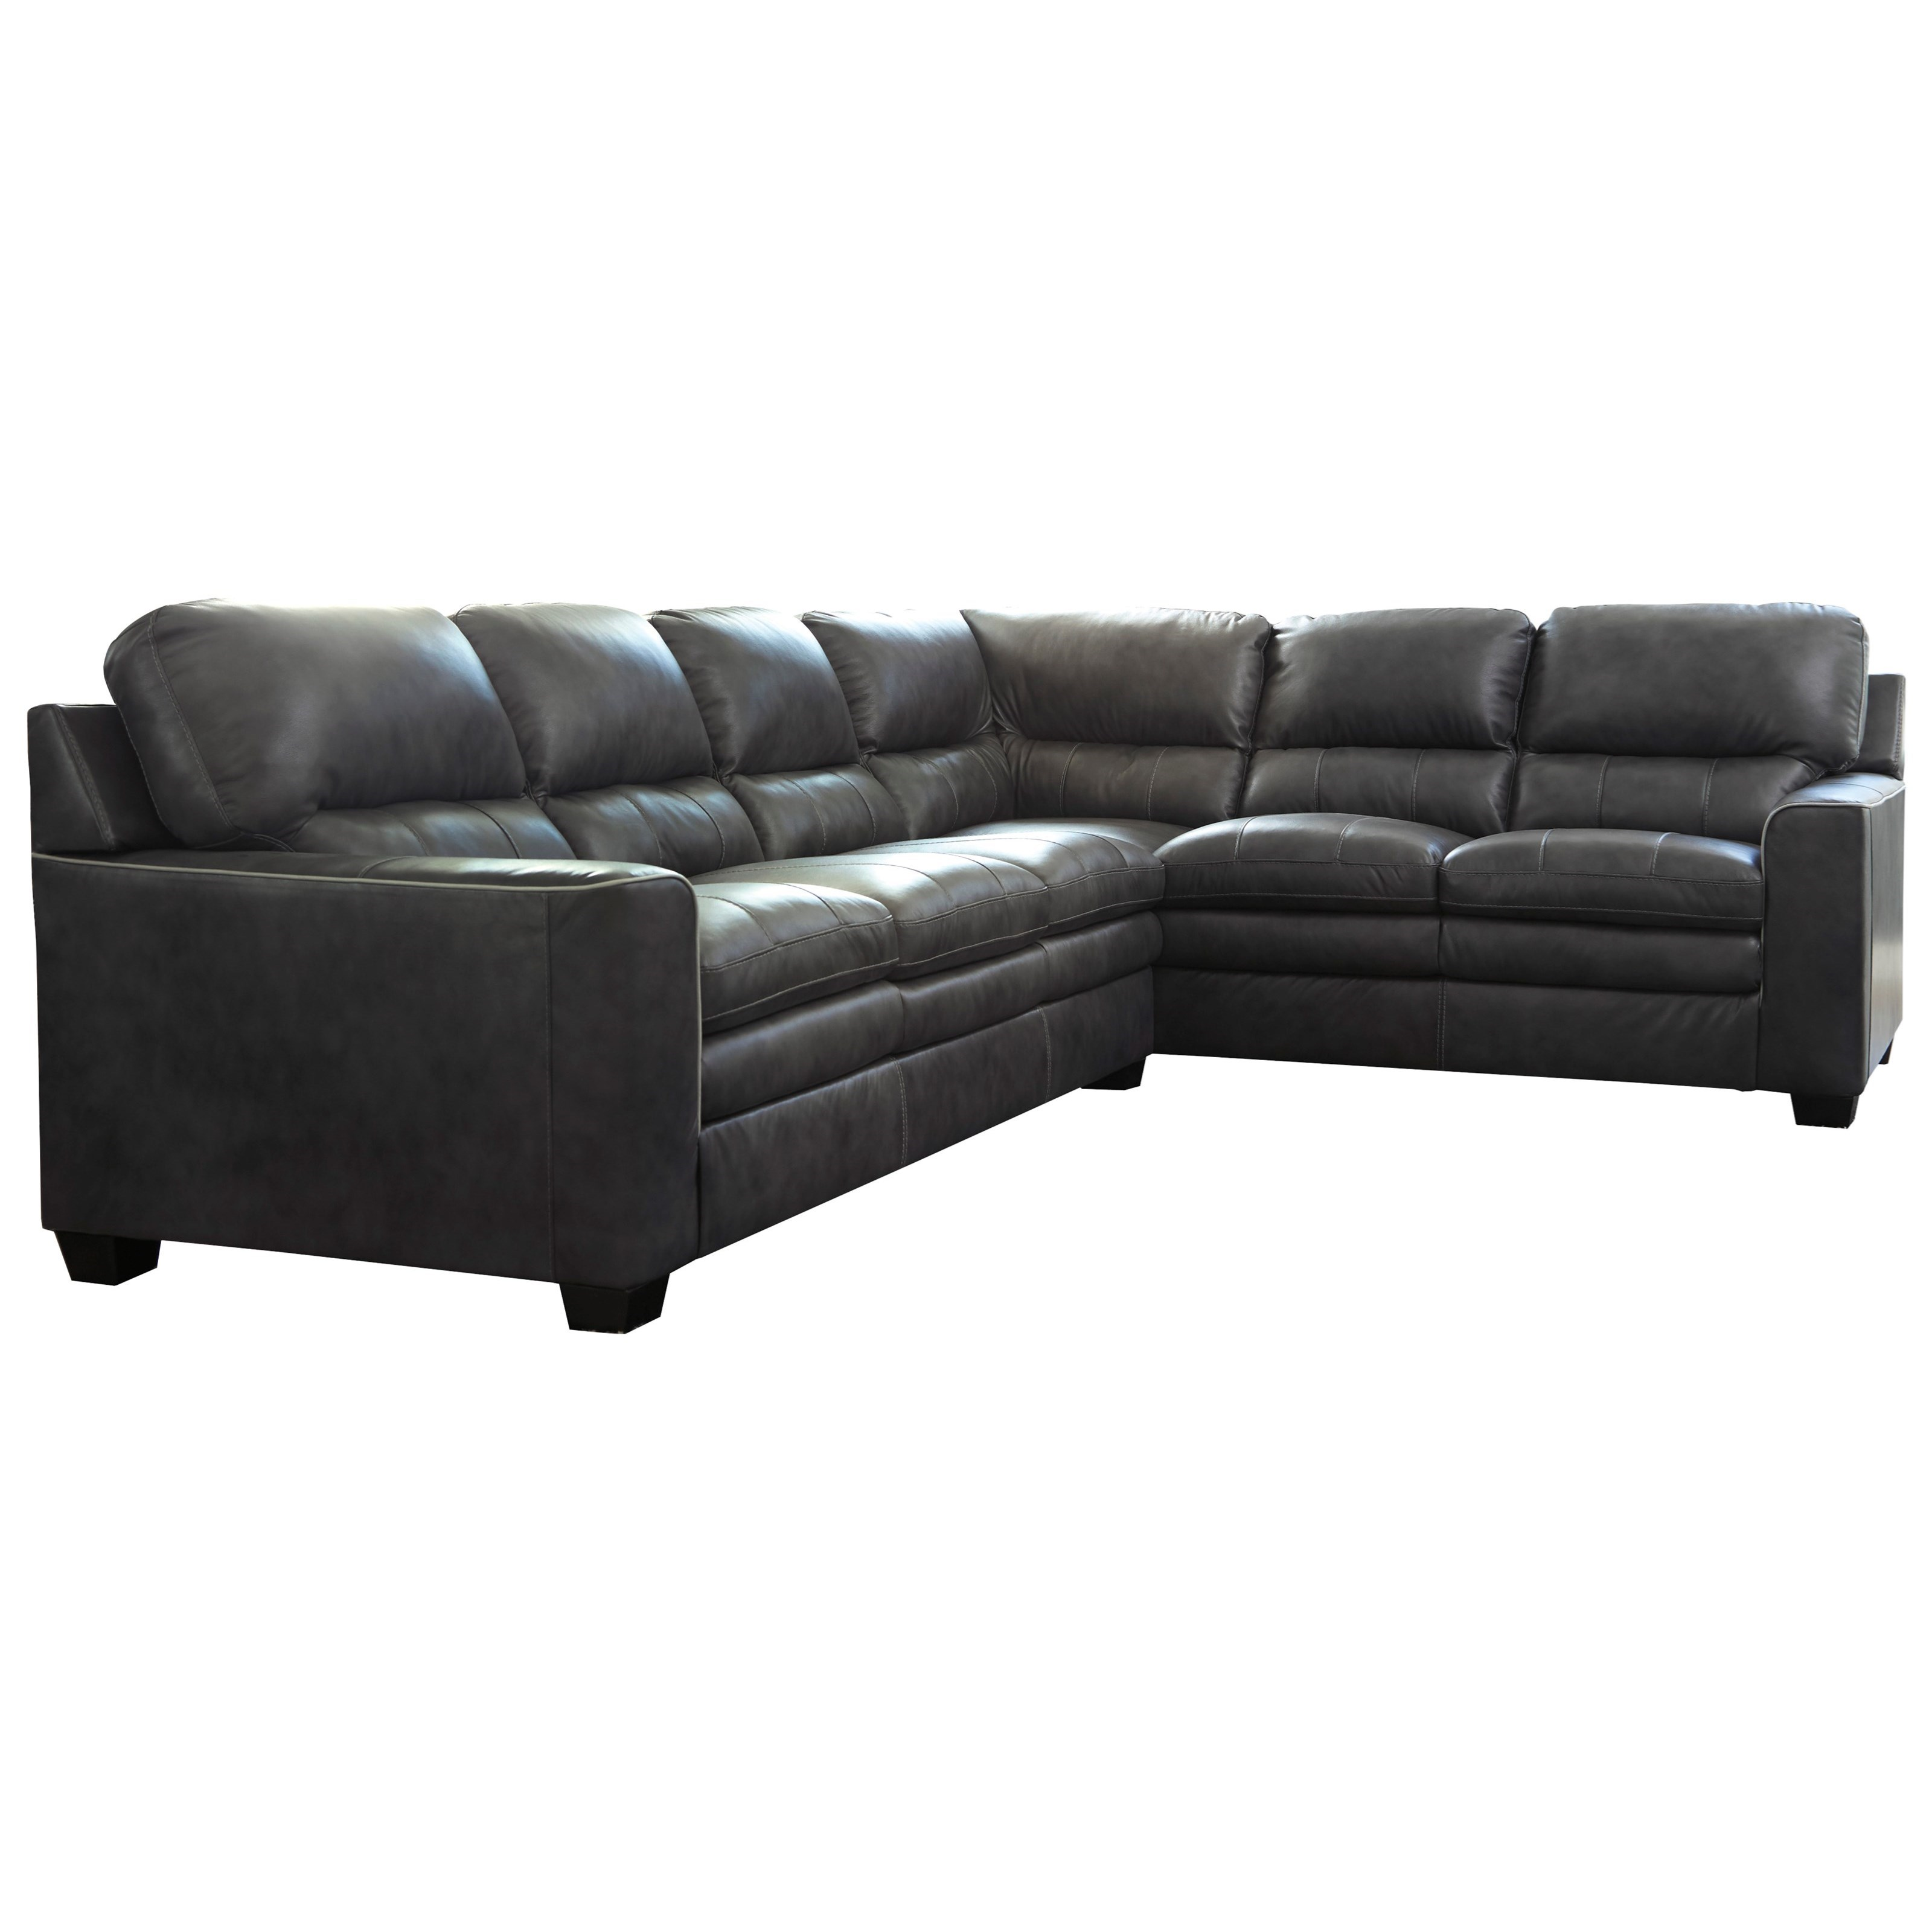 Signature Design by Ashley Gleason L-Shape Sectional - Item Number: 1570266+49